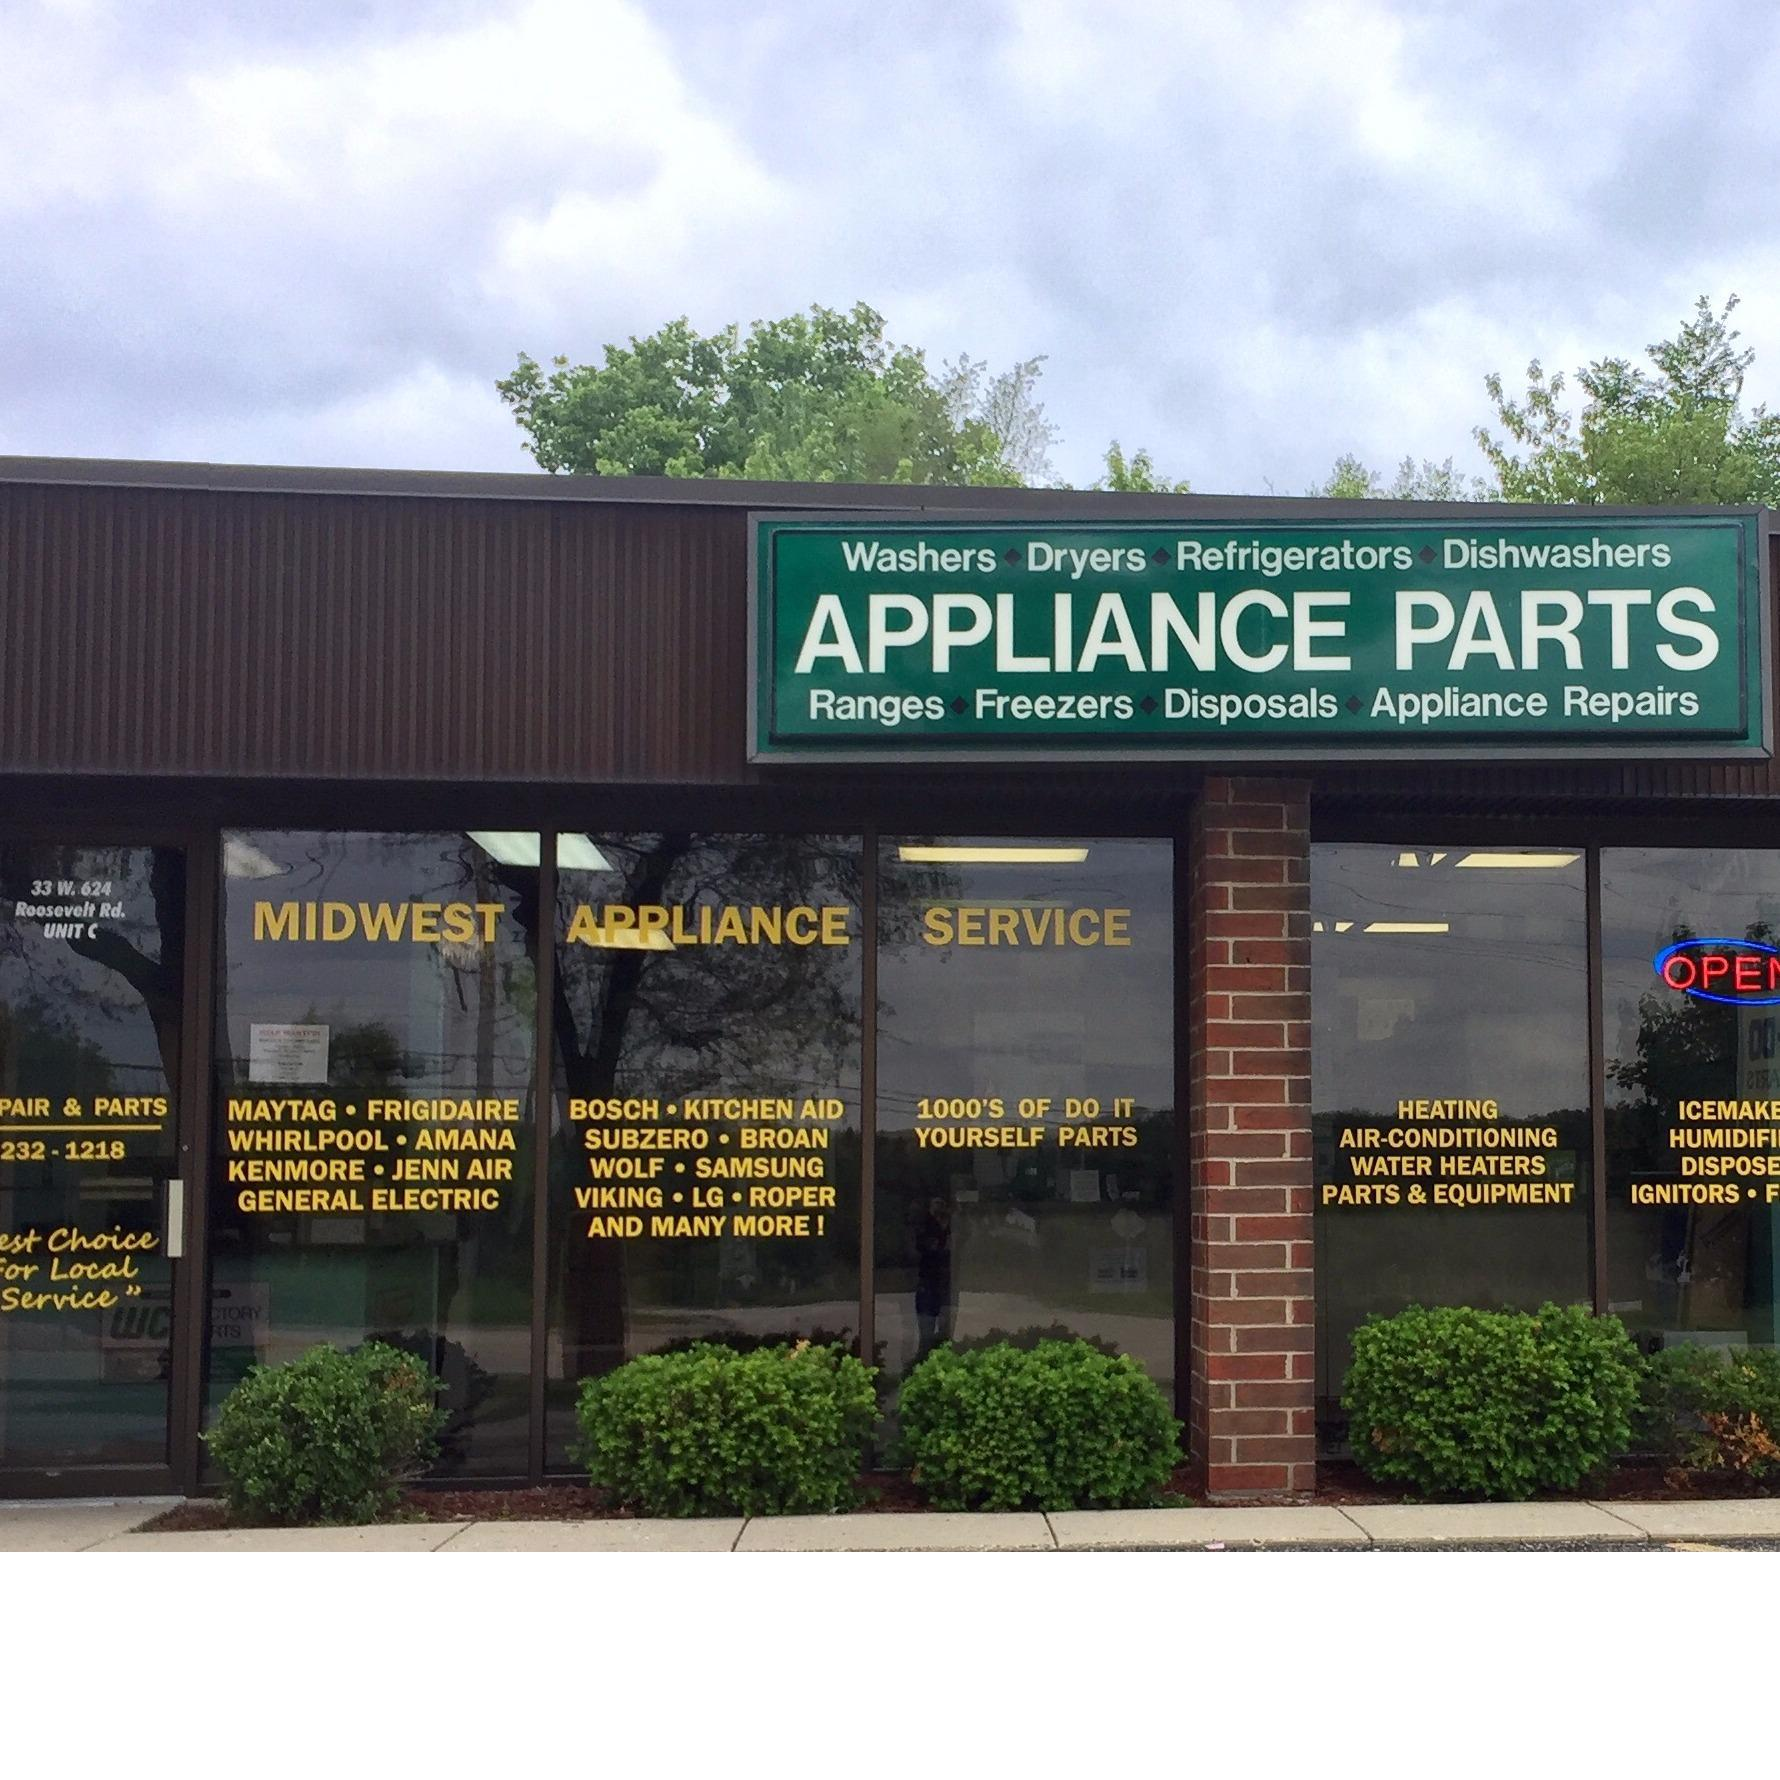 Midwest Appliance Parts is a real brick and mortar appliance parts company that has been in business for over half a century in Chicago, Illinois. We have survived this long in the appliance parts business because we have expert support, quality products, fast shipping and low prices.